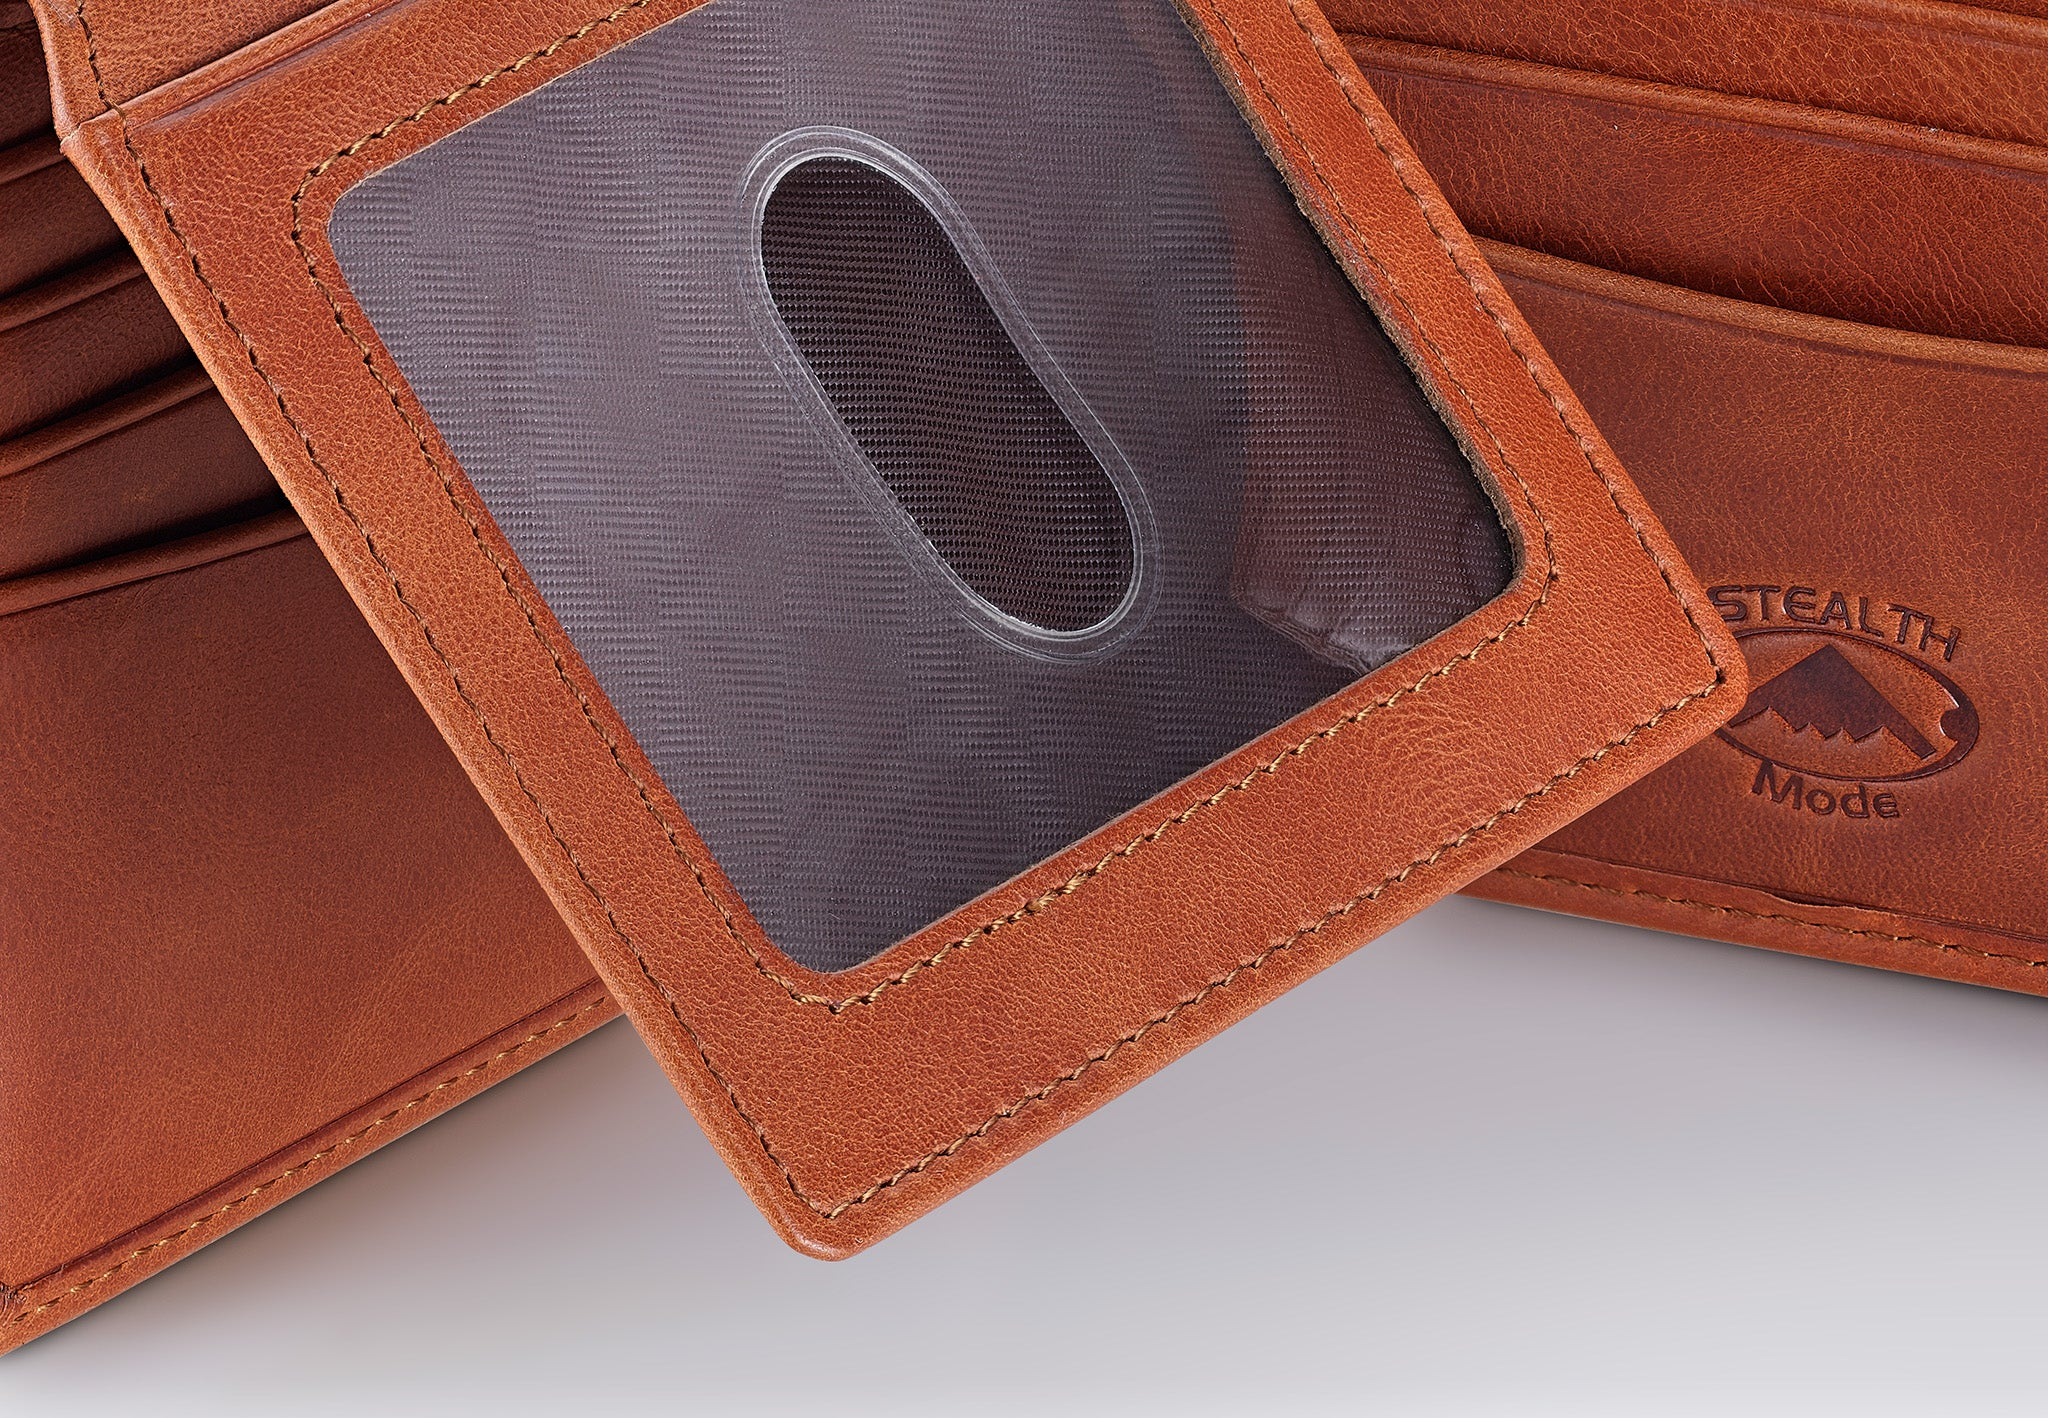 Light Brown Leather Bifold Wallet for Men With ID Window and RFID Blocking